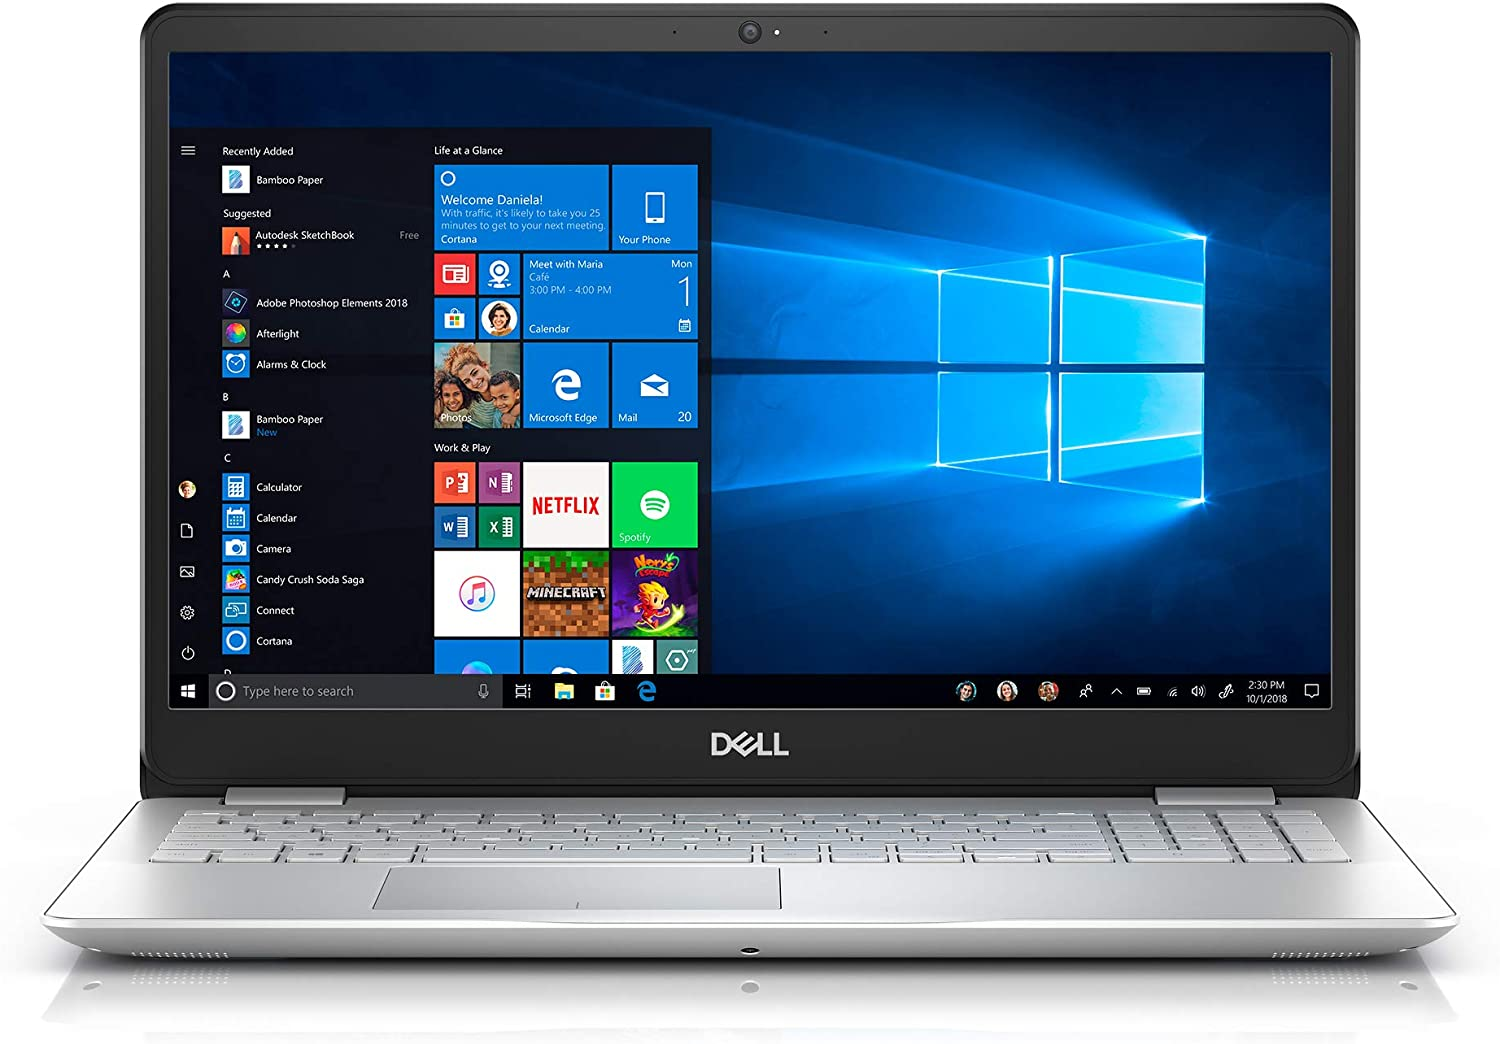 "Dell Inspiron 15 5000 Laptop, 15.6"" Full HD Screen, Intel Core i3-8145U Processor up to 3.90GHz, 4GB RAM, 256GB SSD, Backlit Keyboard, HDMI, Wireless-AC, Bluetooth, Windows 10, Silver"